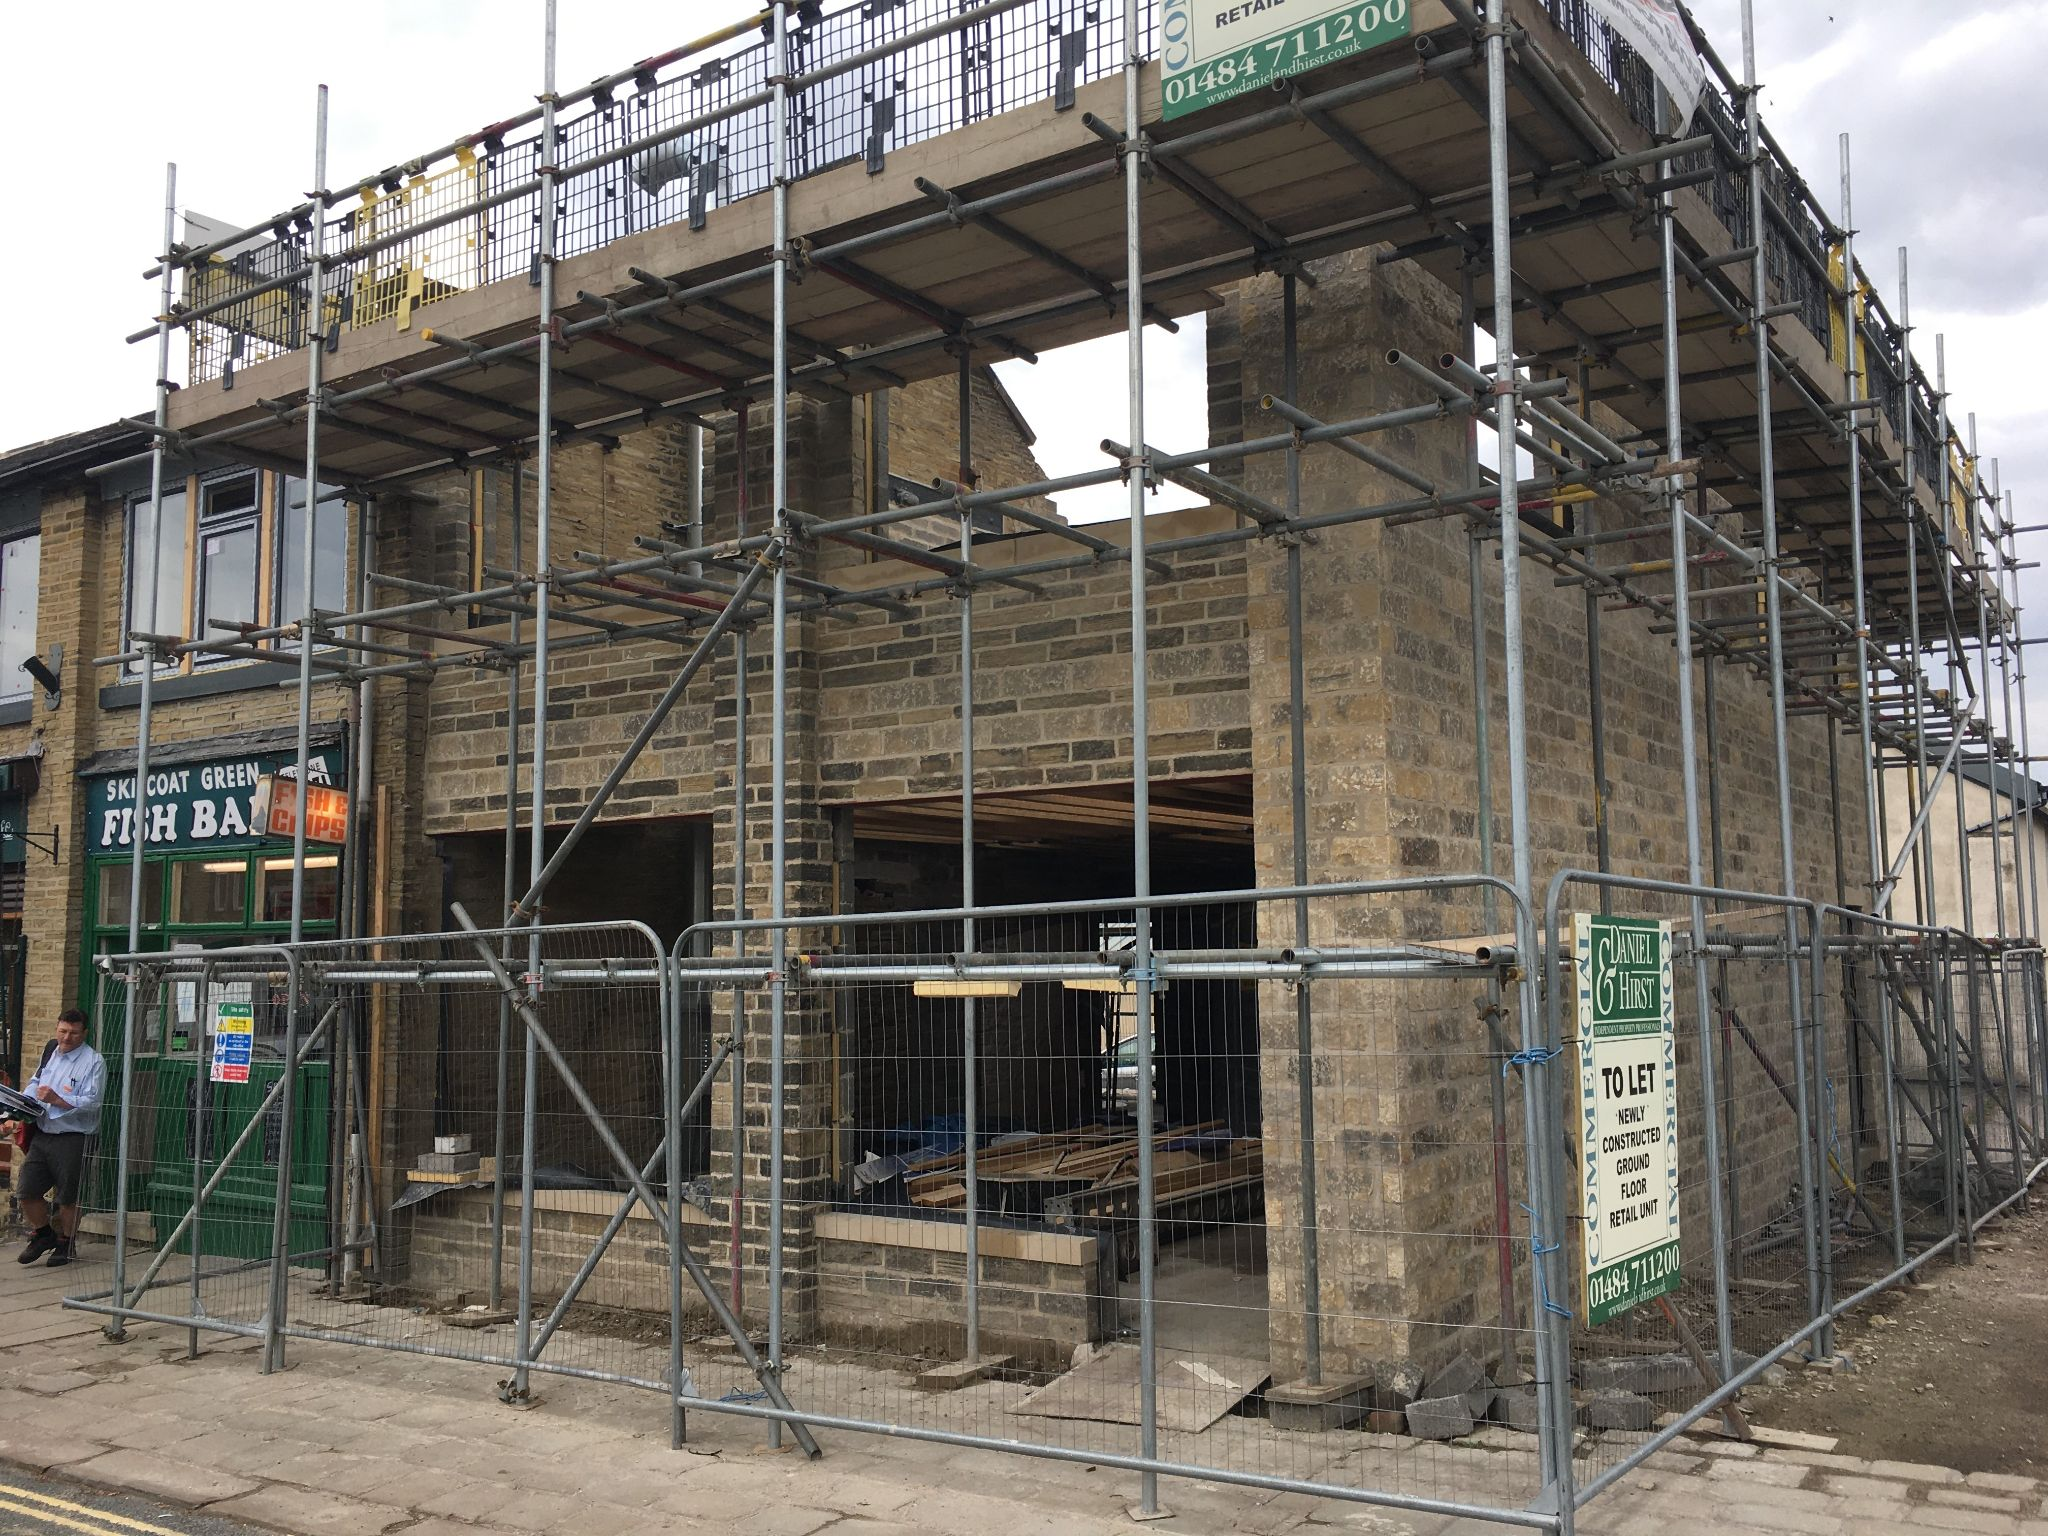 Commercial Property To Let in Halifax - Main.